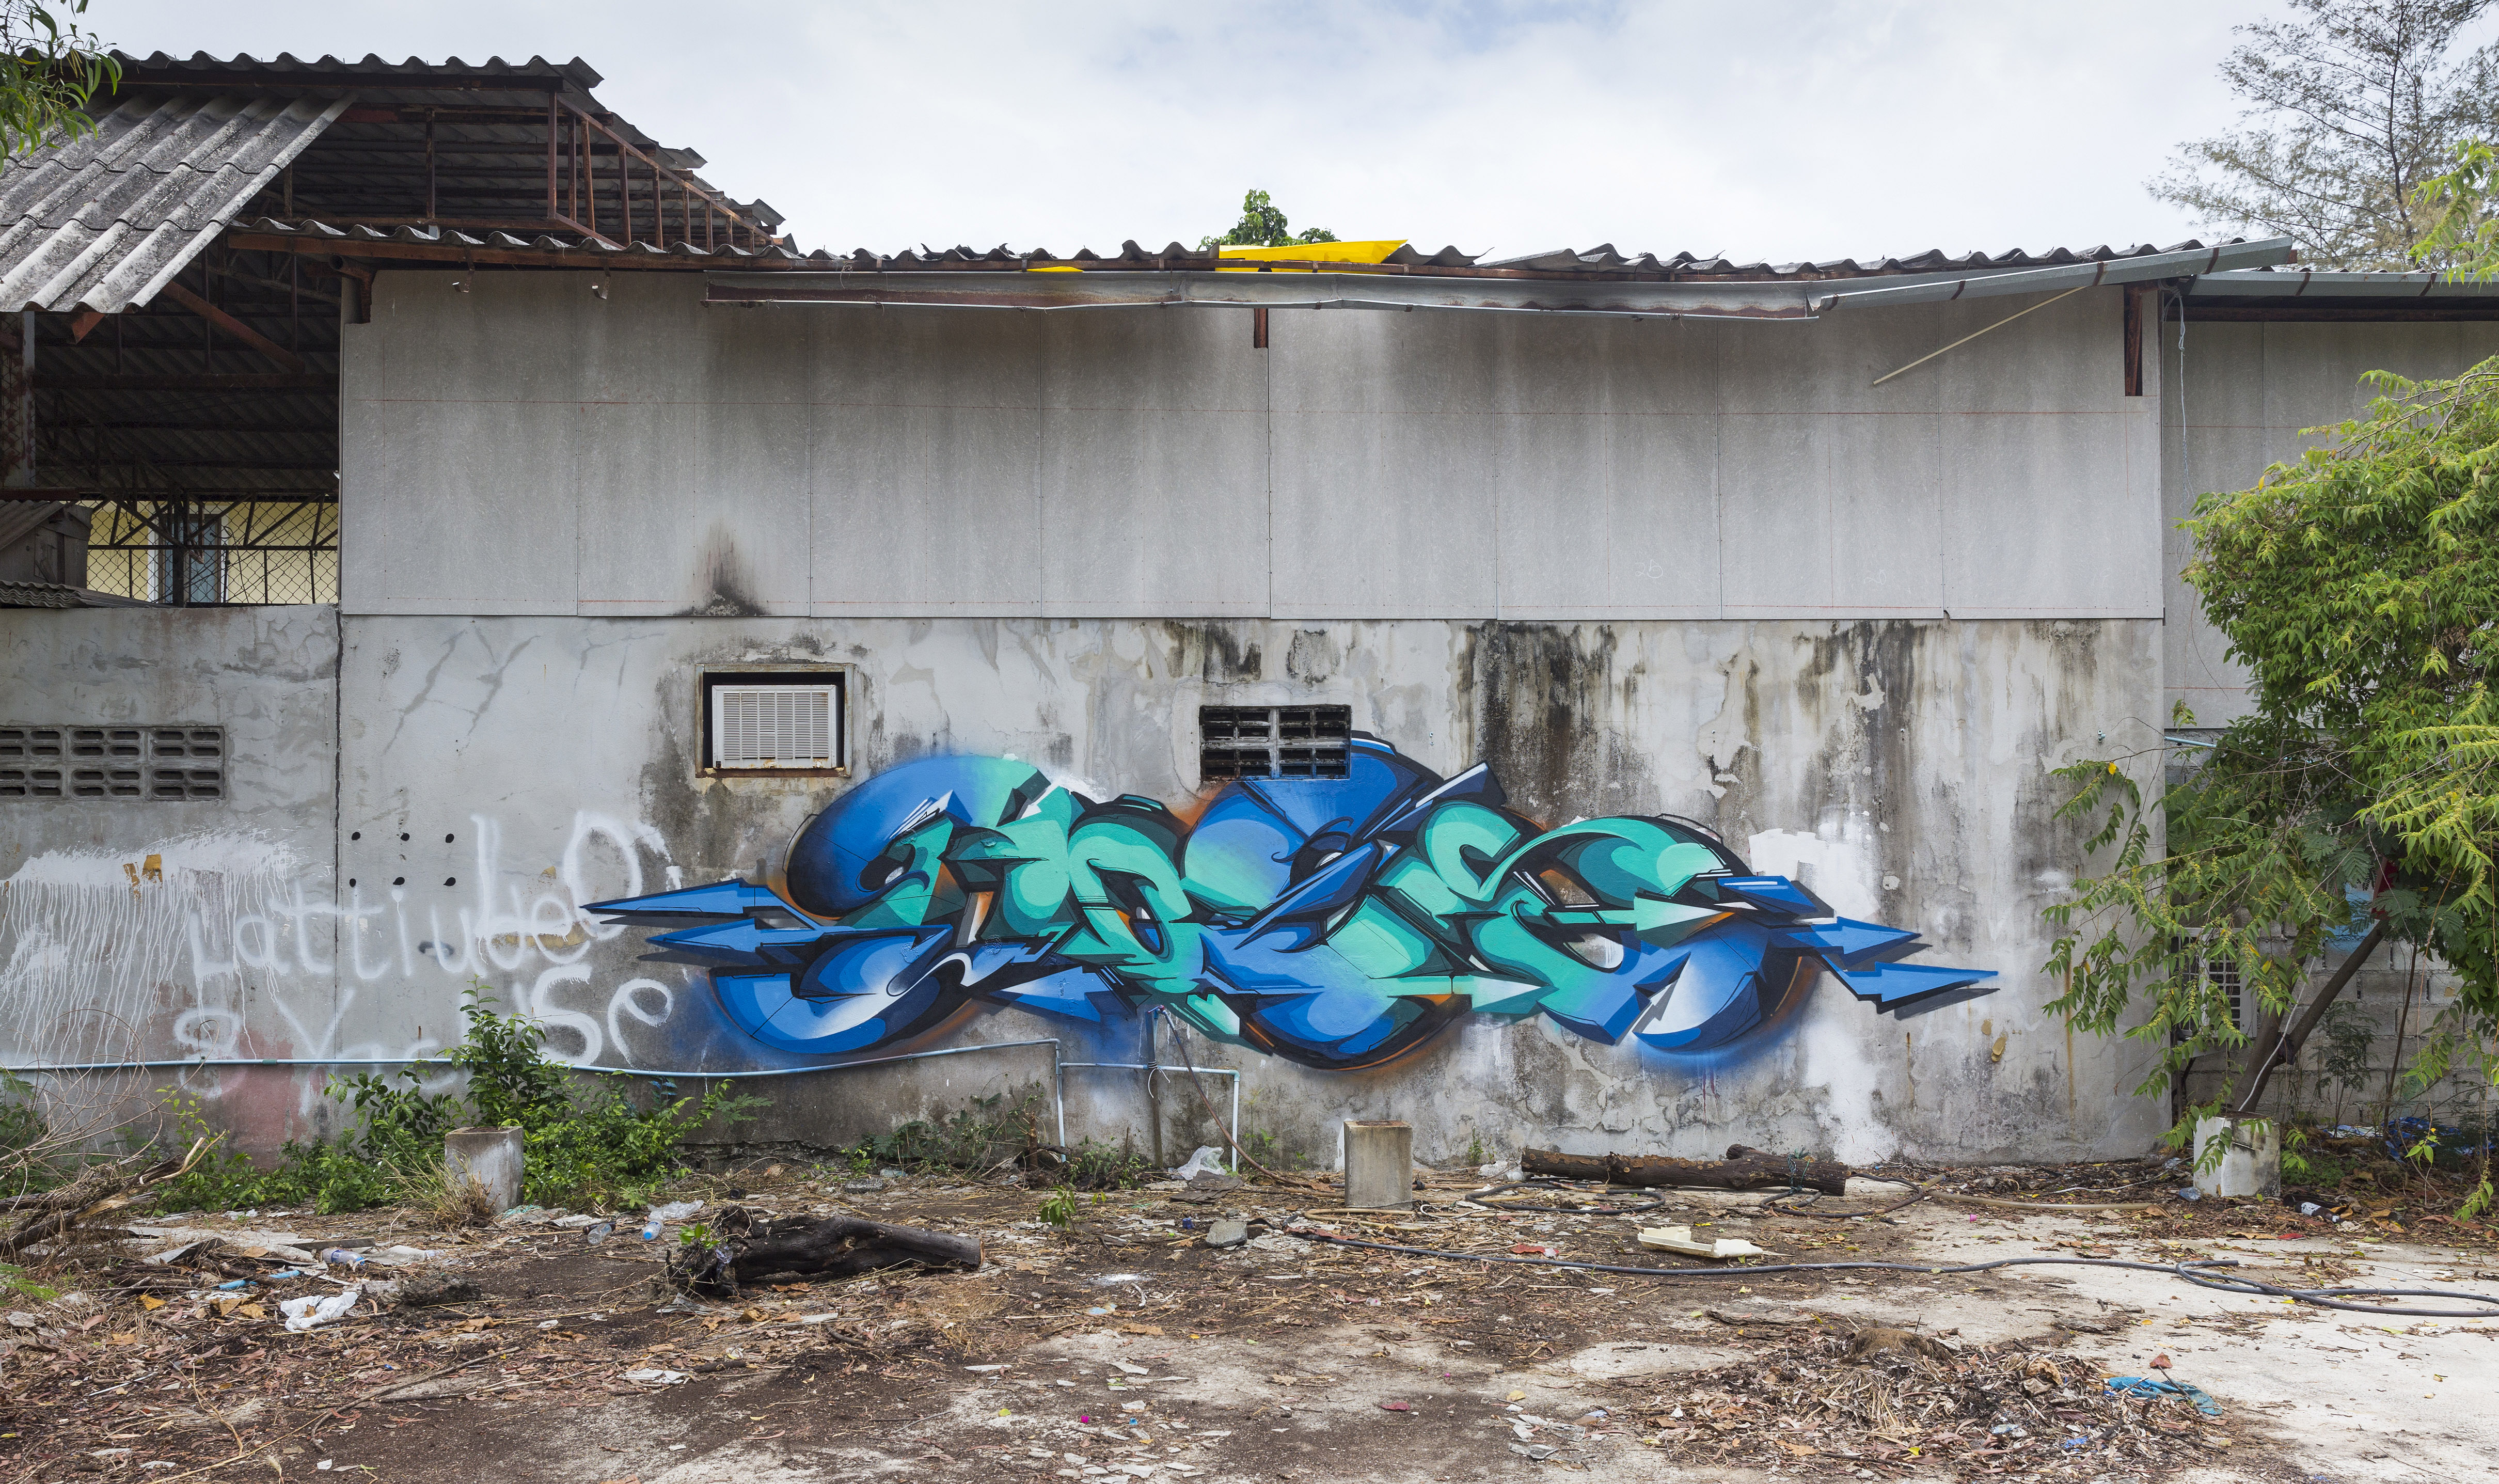 A work by Does - Thailand